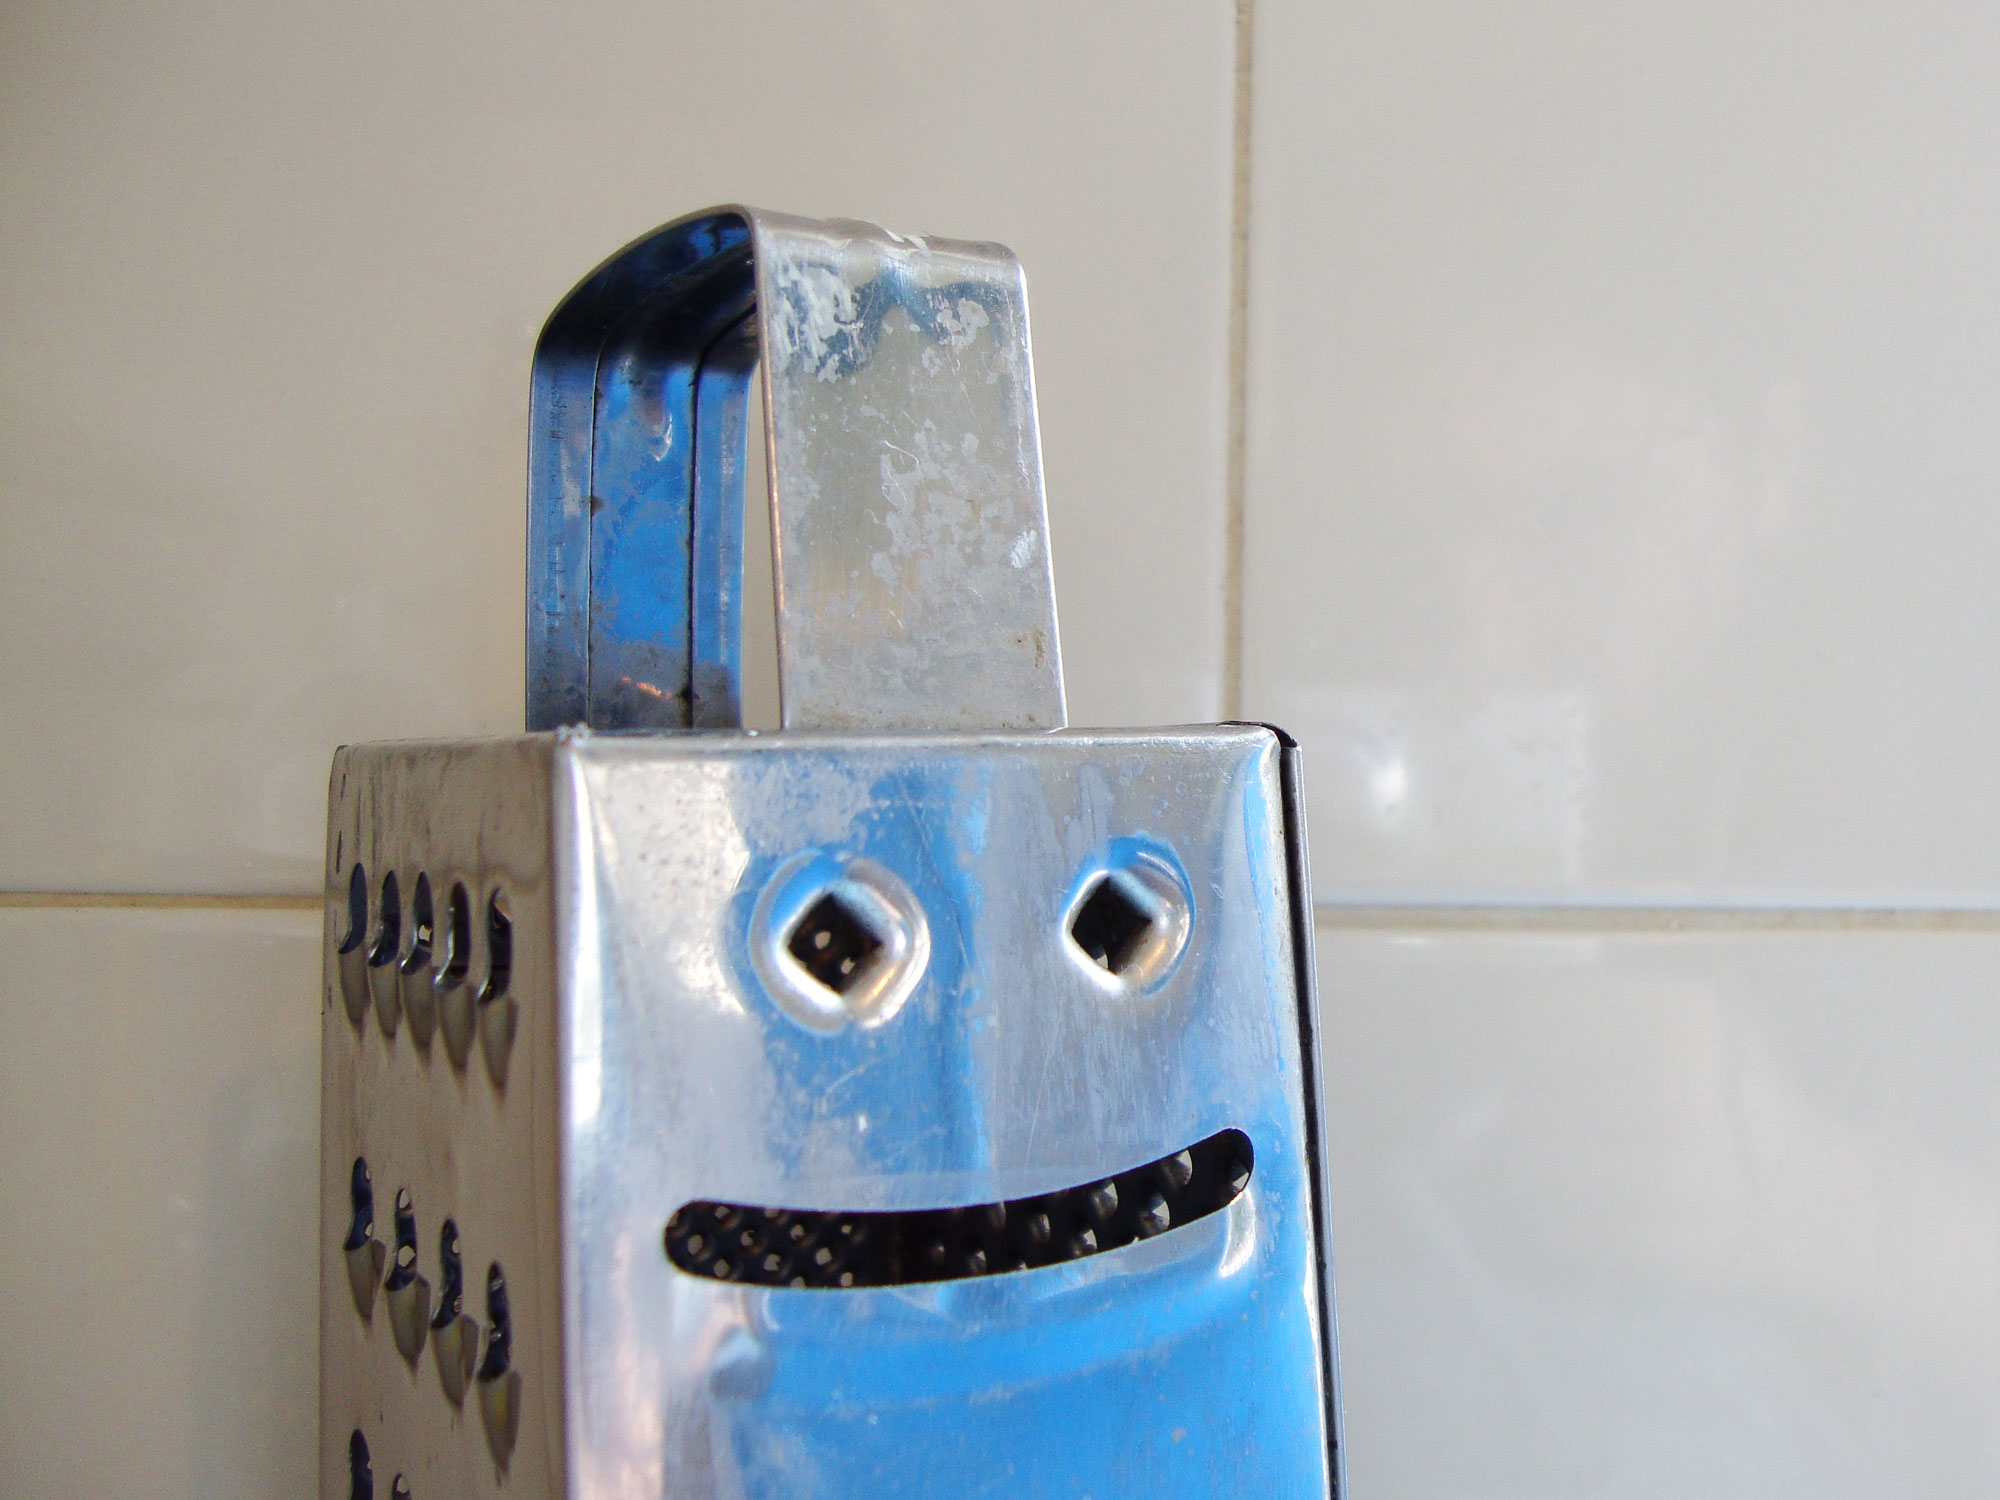 How to Clean Your Cheese Grater